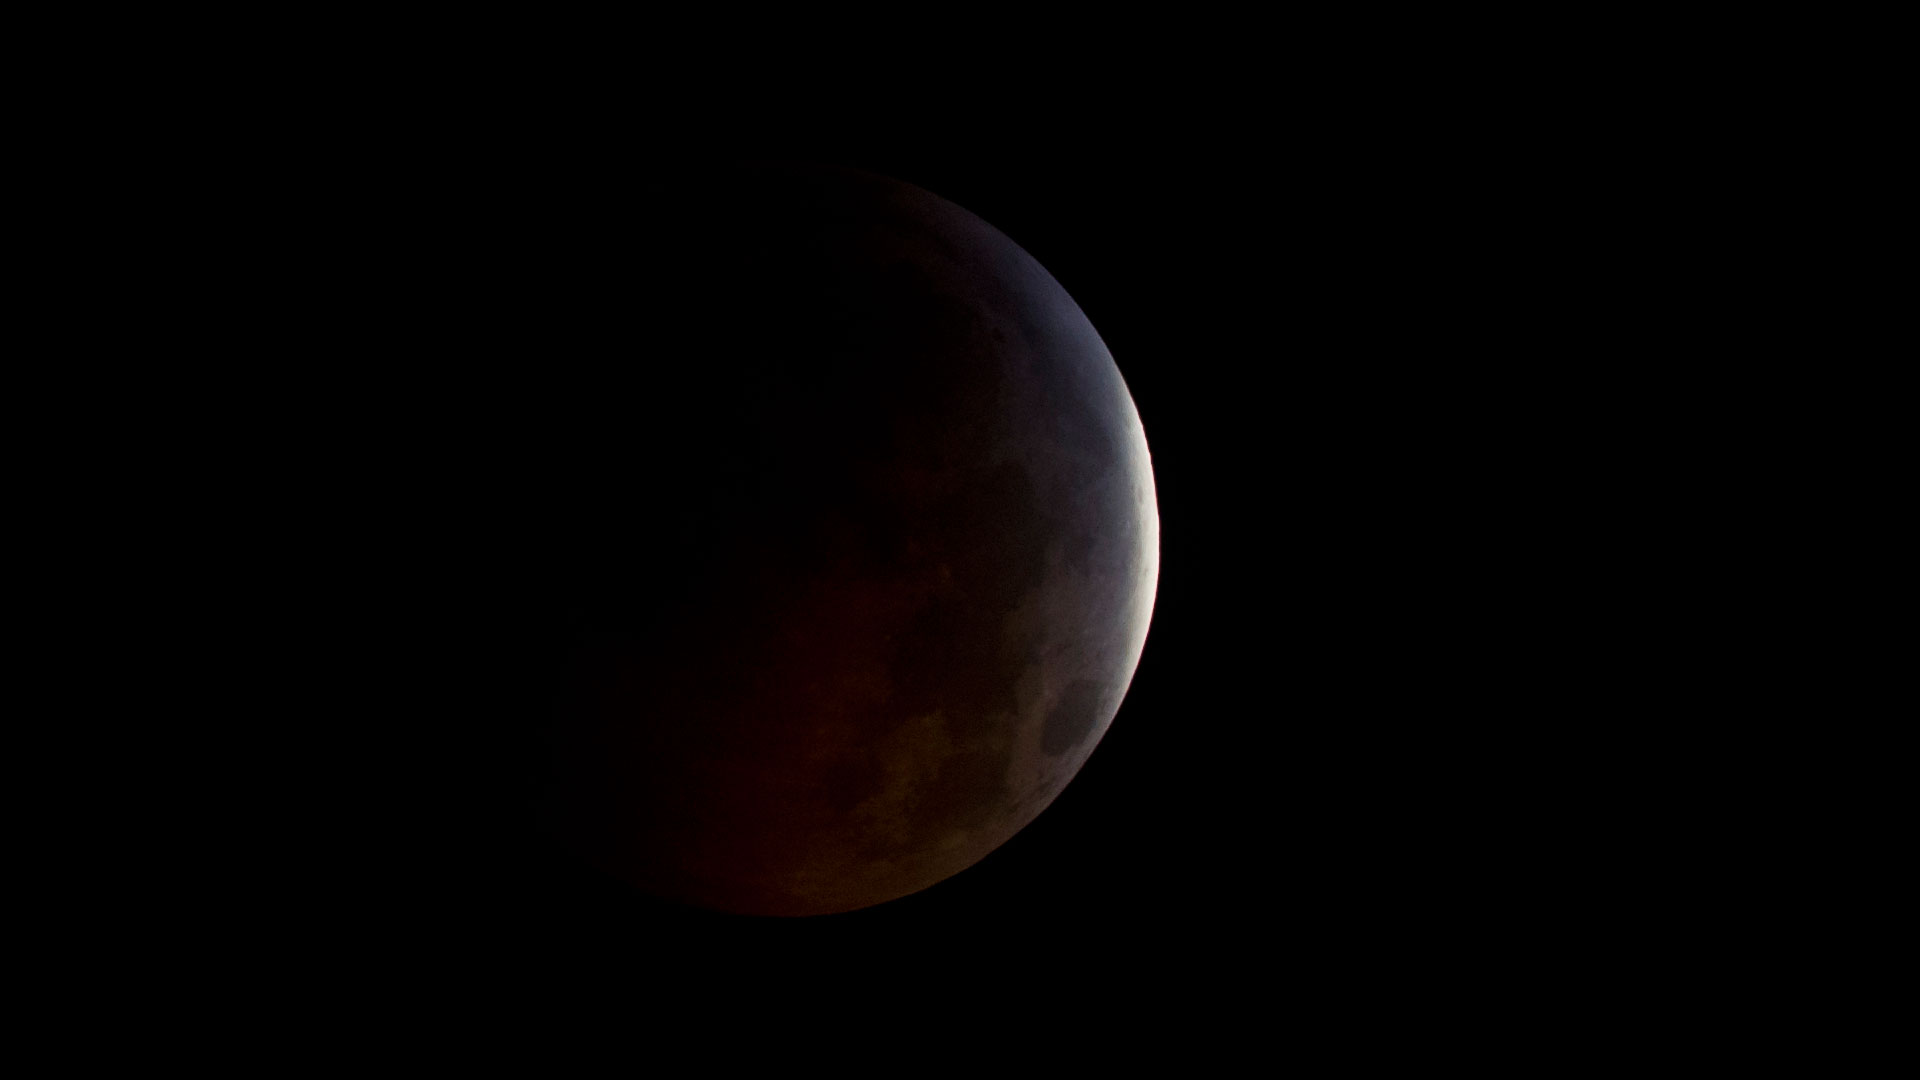 'Blood moon': Complete lunar eclipse begins, the longest of this century